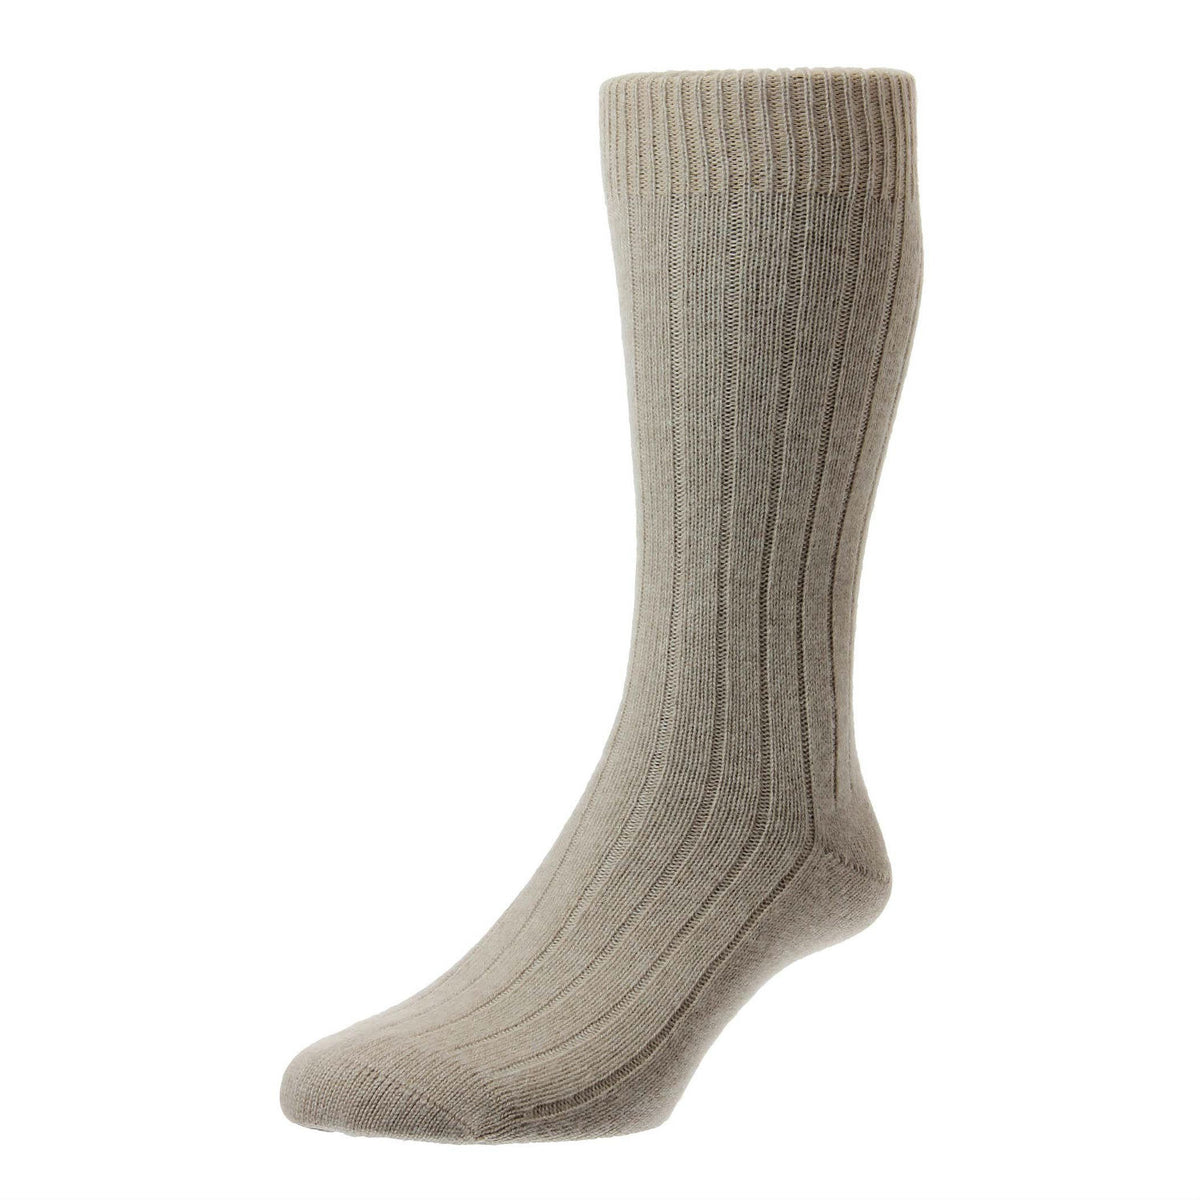 Natural Beige | Mens Cashmere Socks | Made in England | Calf Length Sock | buy now at The Cashmere Choice London